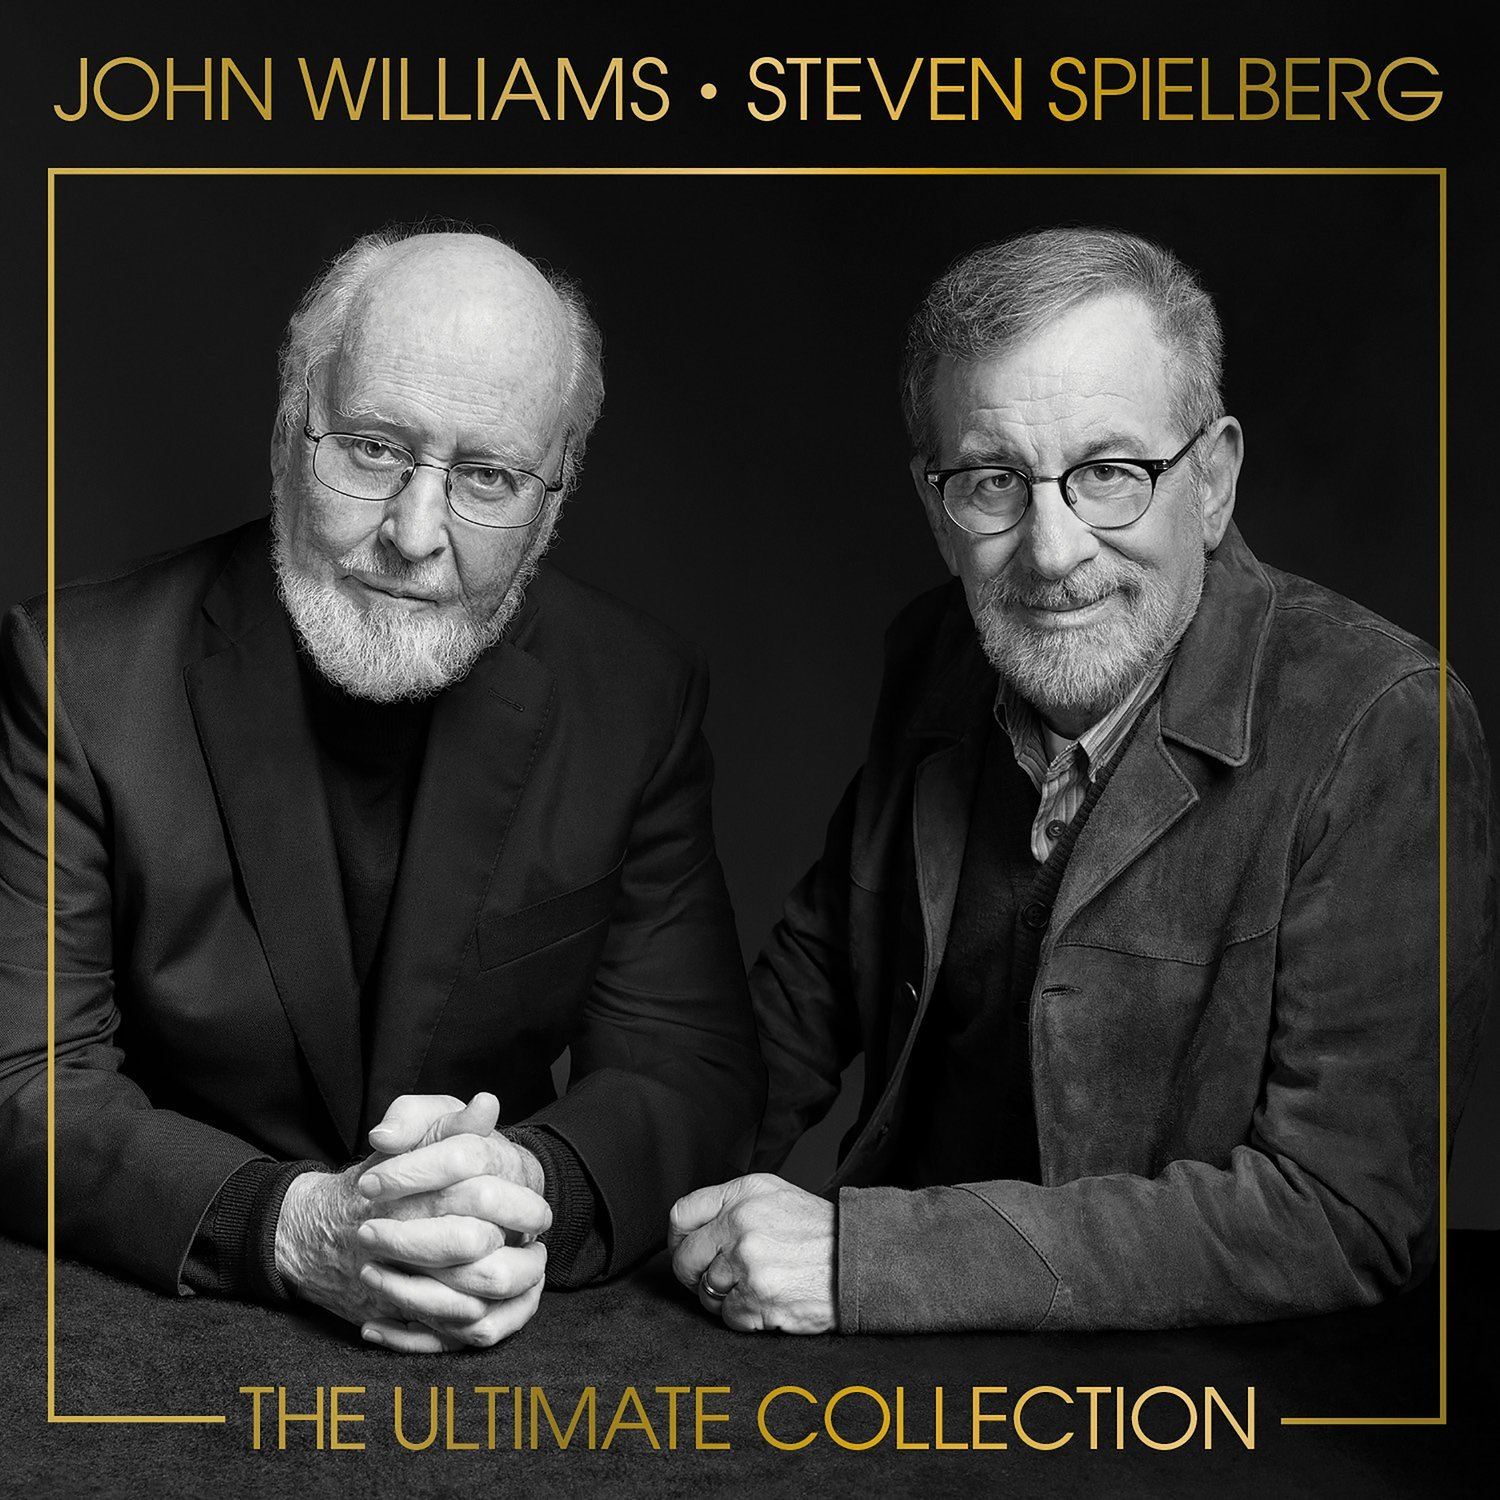 john williams steven spielberg the ultimate collection three john williams steven spielberg the ultimate collection three disc retrospective will be released on 17 2017